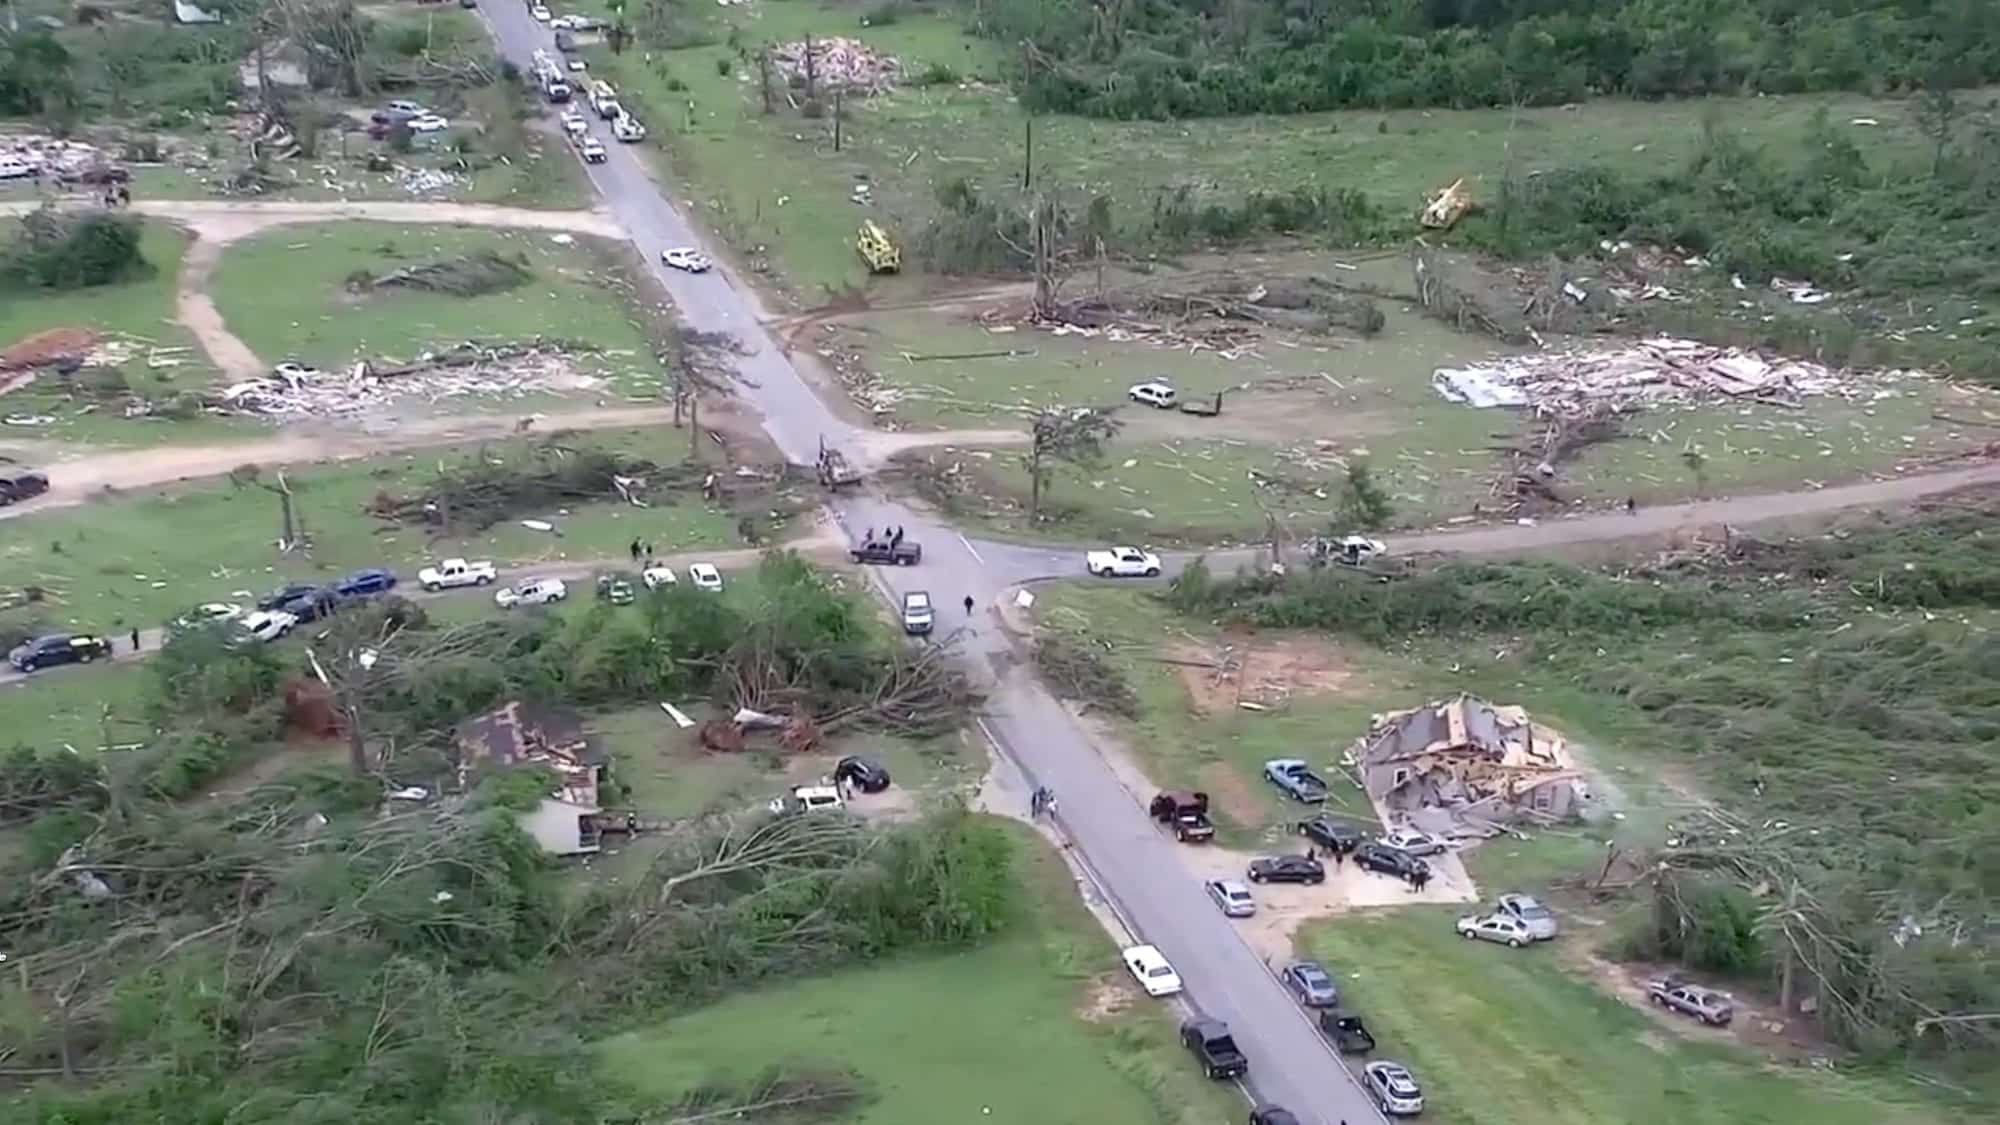 Drones capture devastation caused by tornadoes over Easter weekend